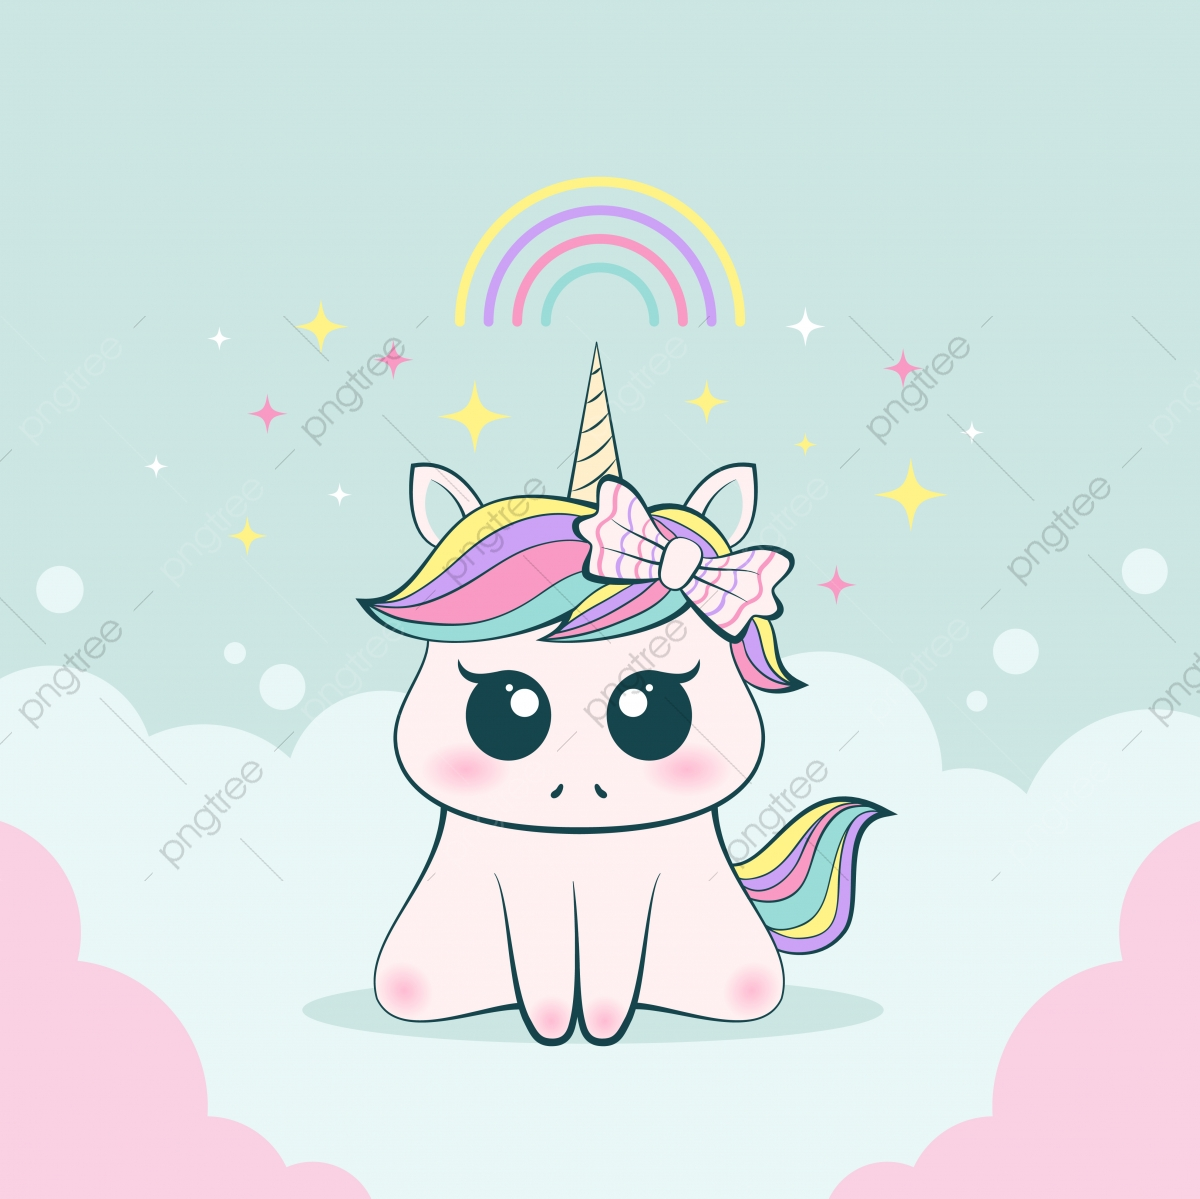 pngtree cute baby unicorn innocent and adorable expression. png image 3712635